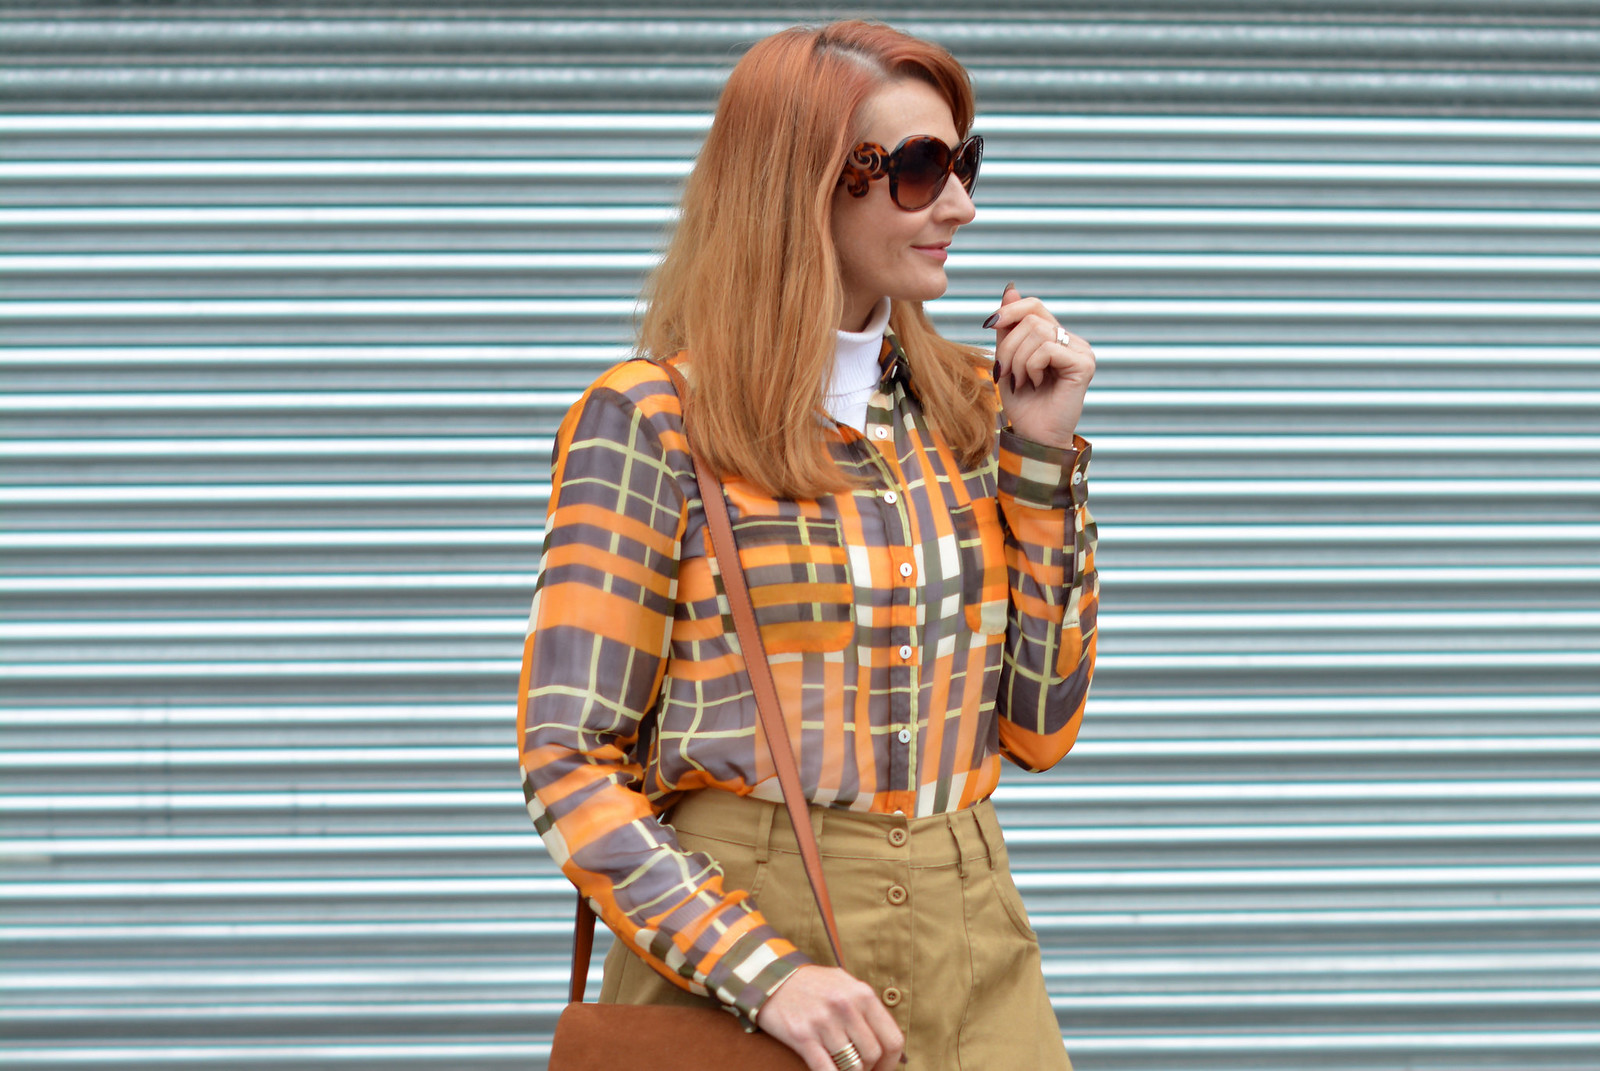 70s style without wearing flared jeans | Midi skirt, roll neck, shades of brown and orange